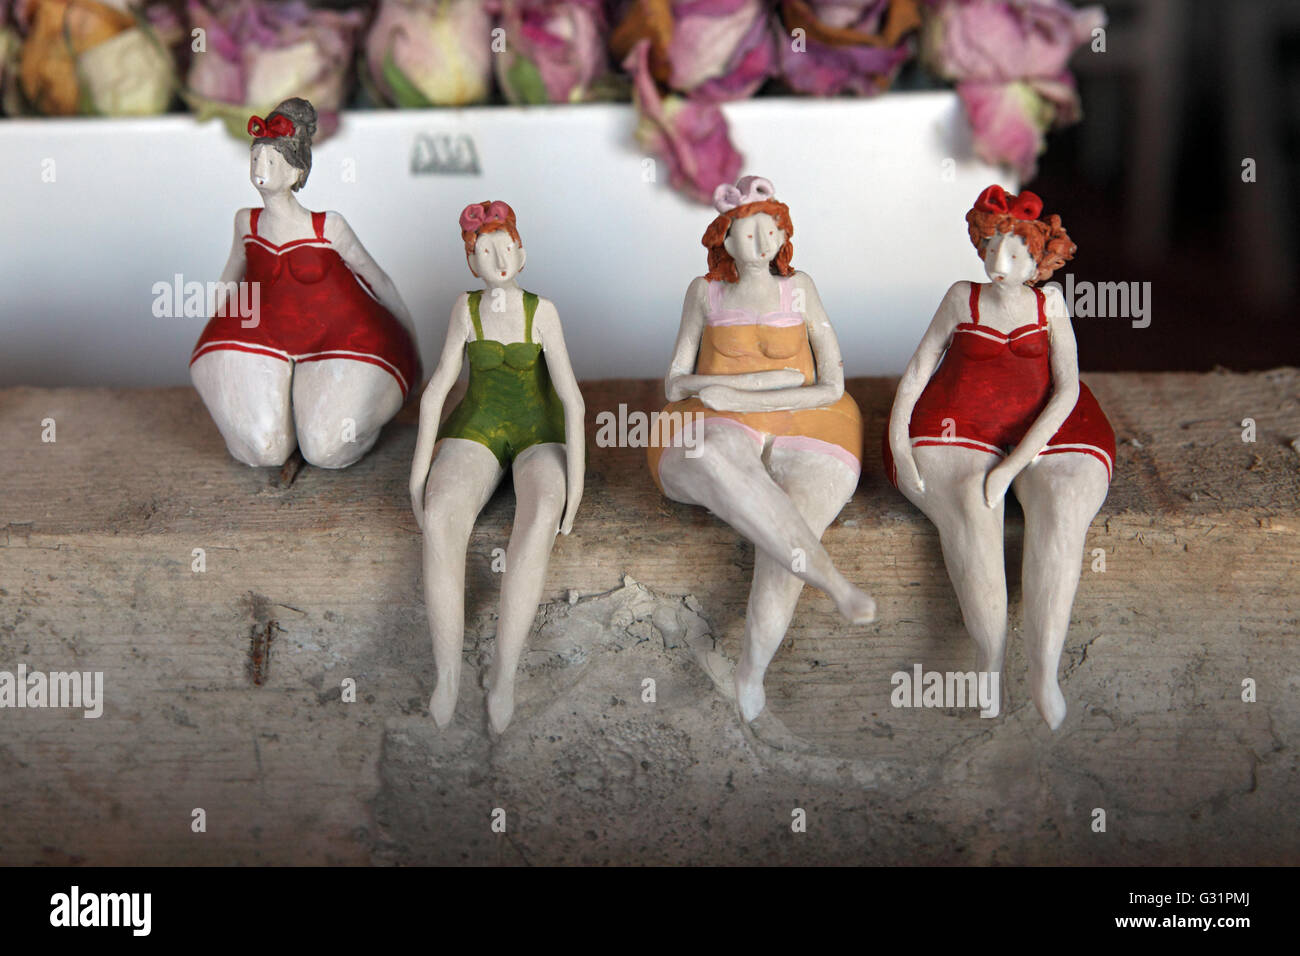 Zuerich, Switzerland, chubby female figures in a shop window - Stock Image